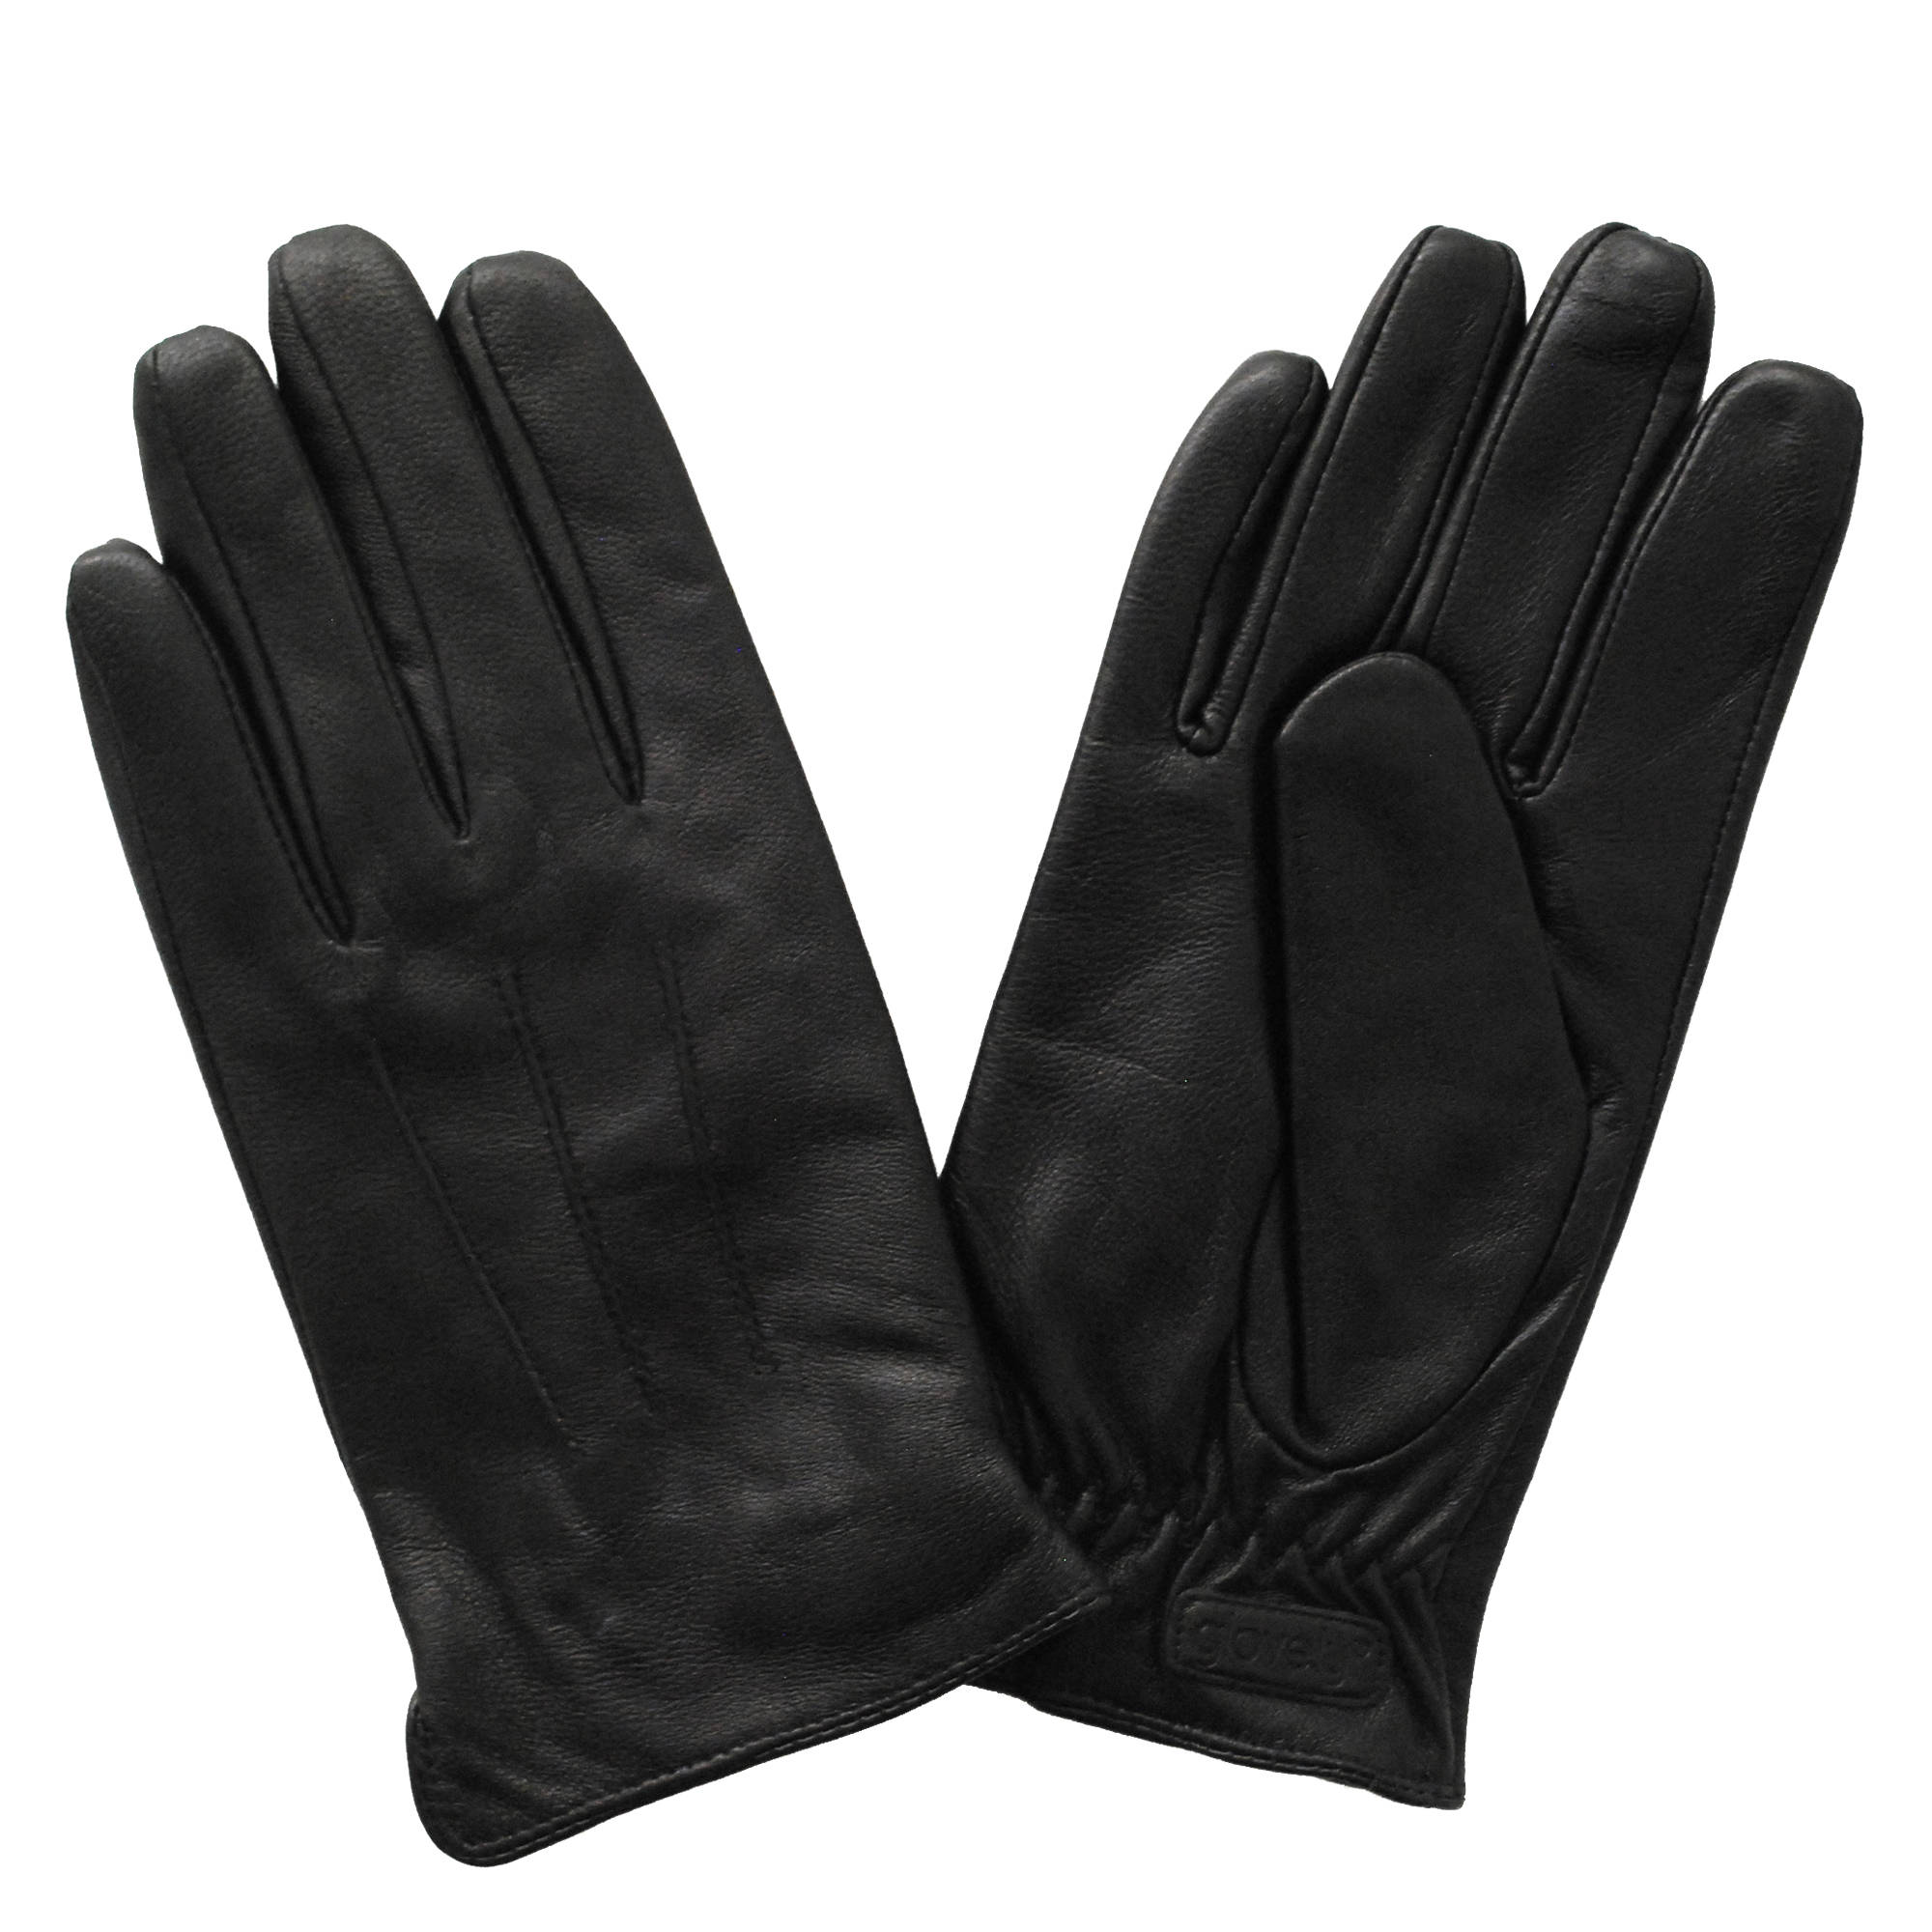 Glove ly men s leather touchscreen gloves black small